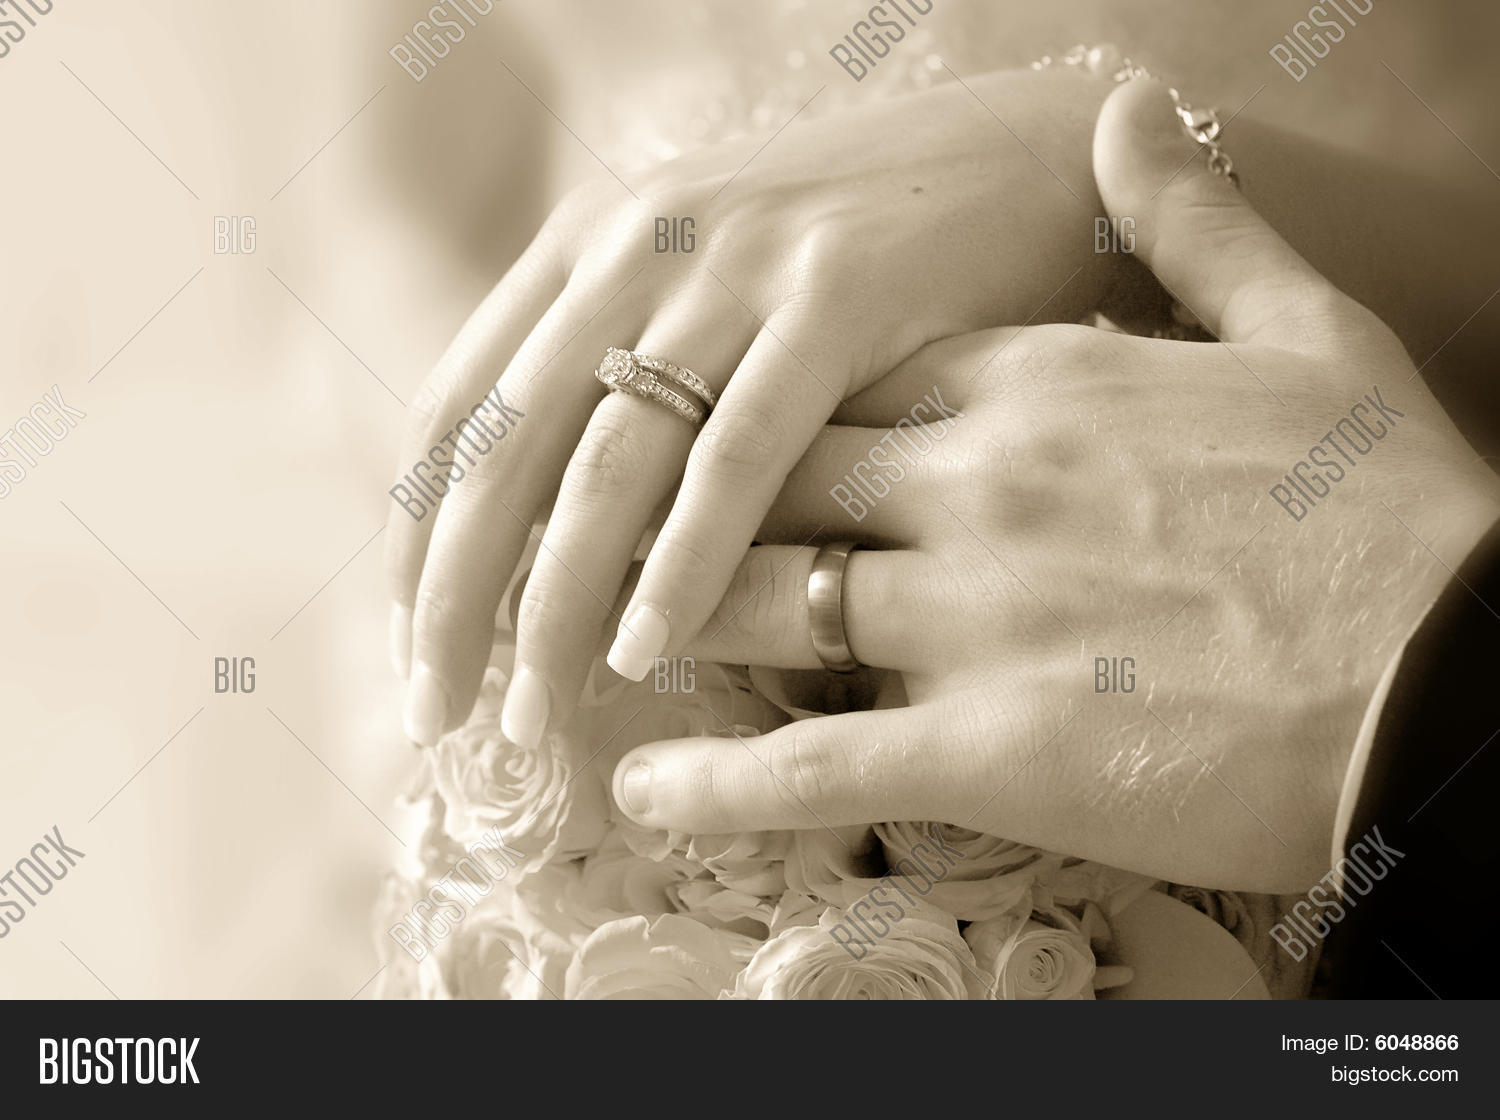 Wedding Rings On Bride Groom Hands Image Photo Bigstock